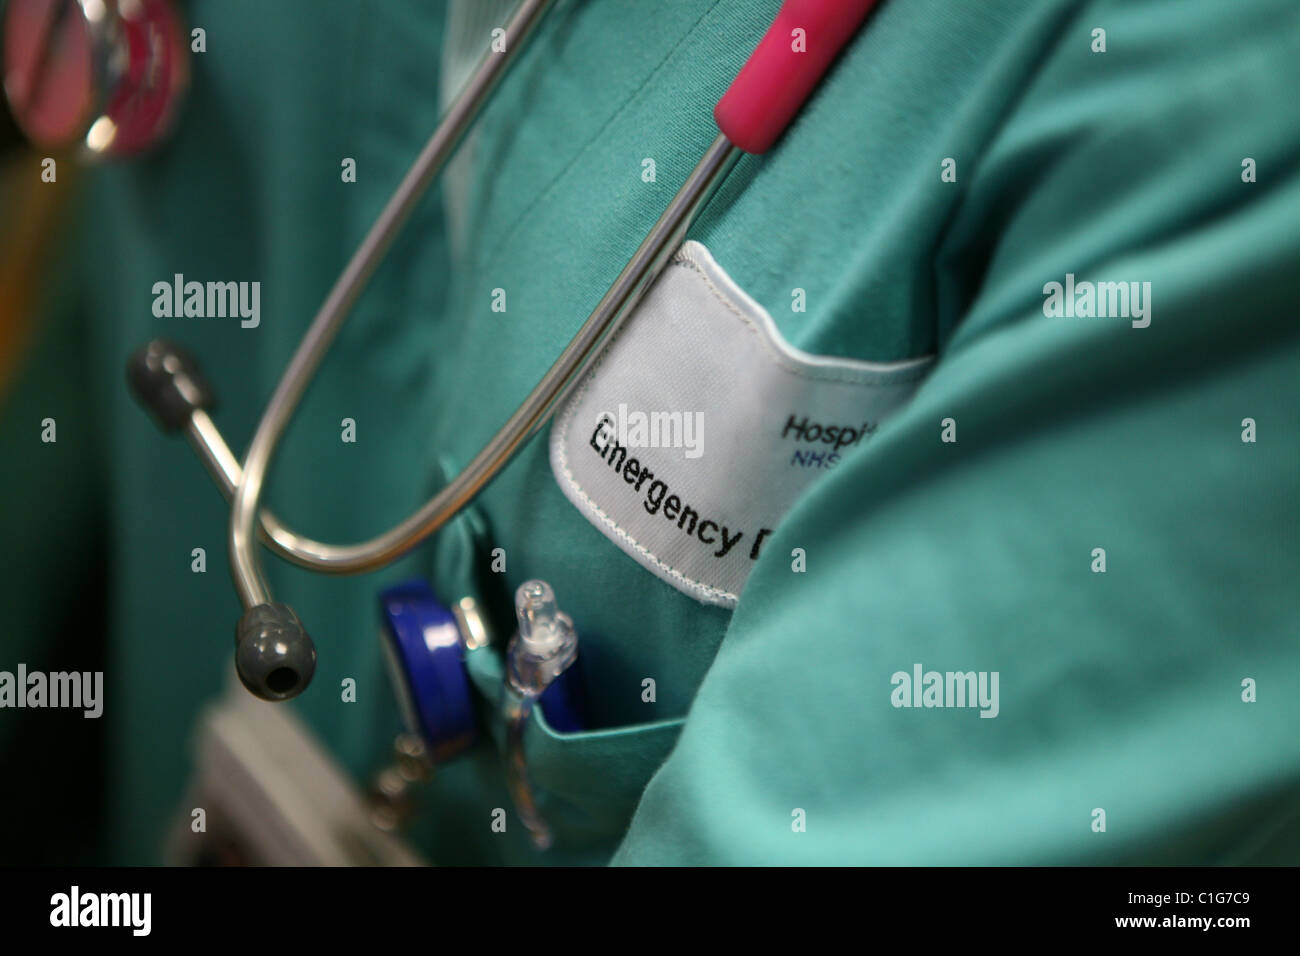 Health care worker with stethoscope - Stock Image